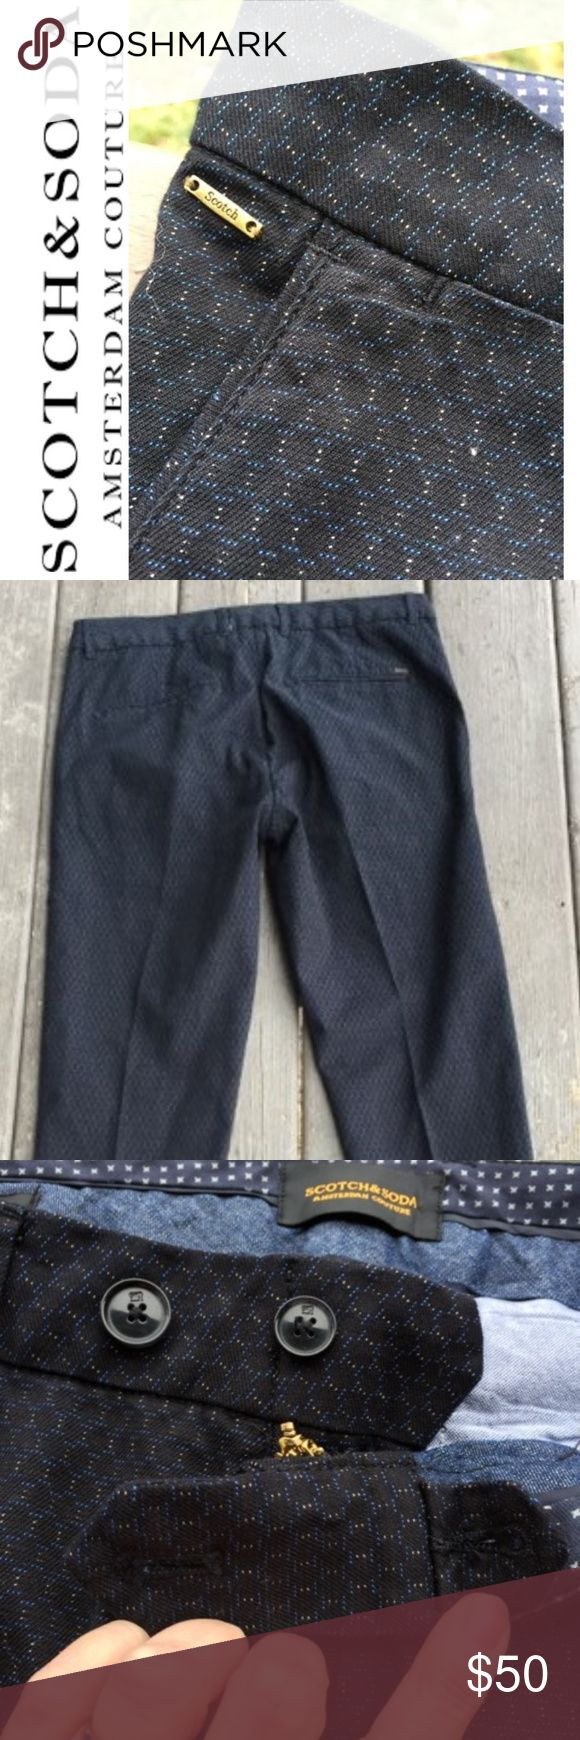 """Scotch & Soda 32x32 Mott super skinny chinos EUC Scotch & Soda 32x32 Men's Mott super skinny chinos.  EUC  Beautiful condition!!!!!!  Black with a blue and white octagon print.  Bottom of pant tapers down to 6 1/2"""" across. Scotch & Soda Pants Chinos & Khakis"""